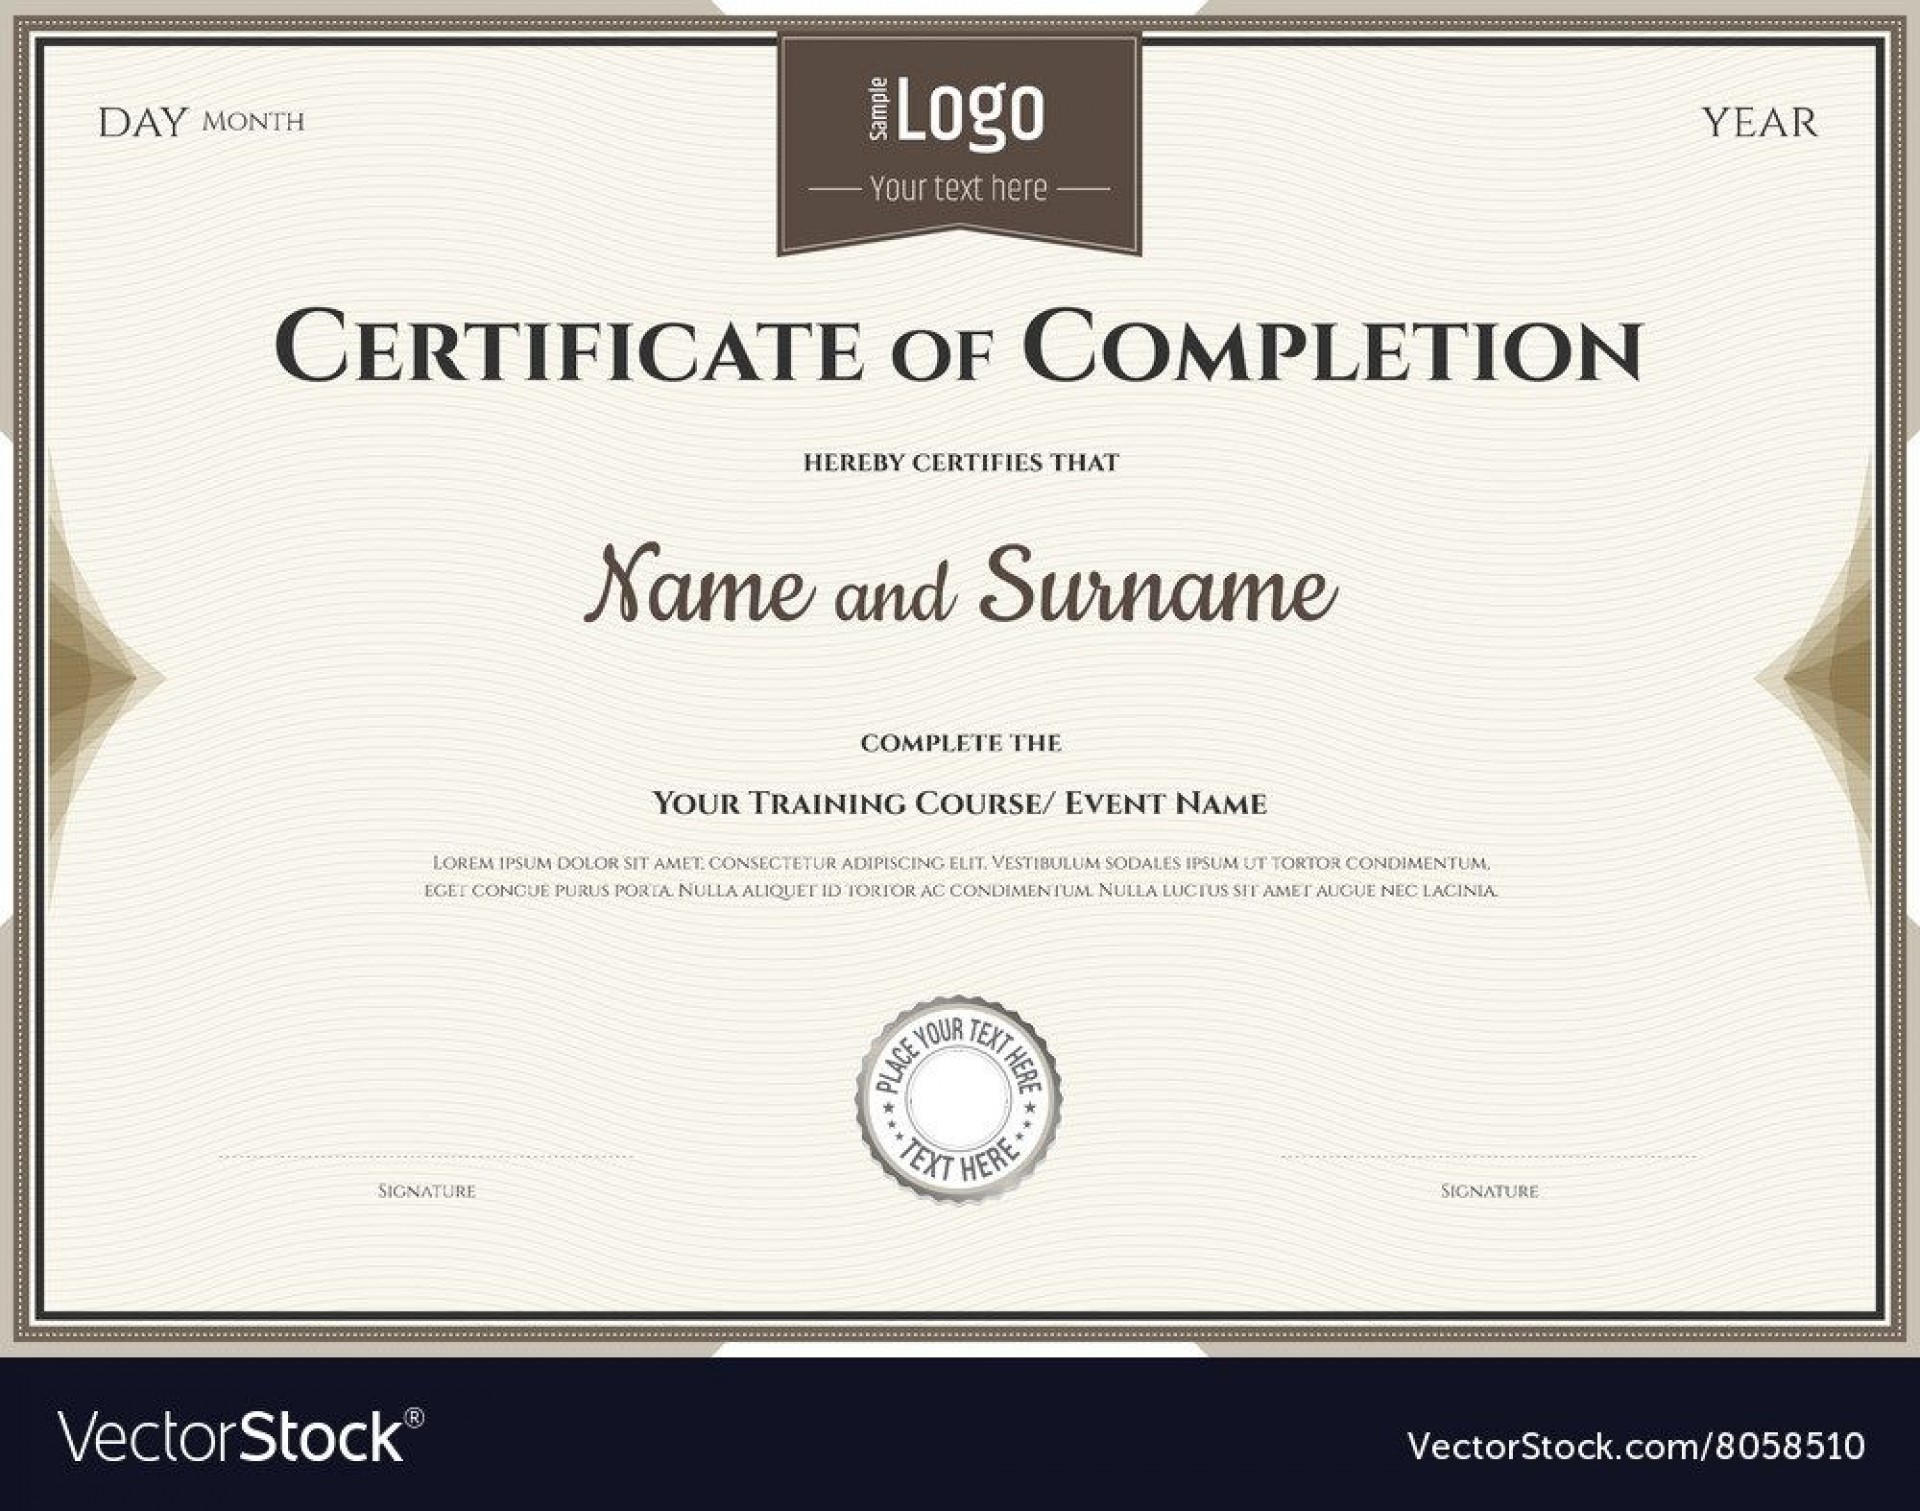 006 Frightening Free Certificate Of Completion Template Concept  Blank Printable Download Word Pdf1920